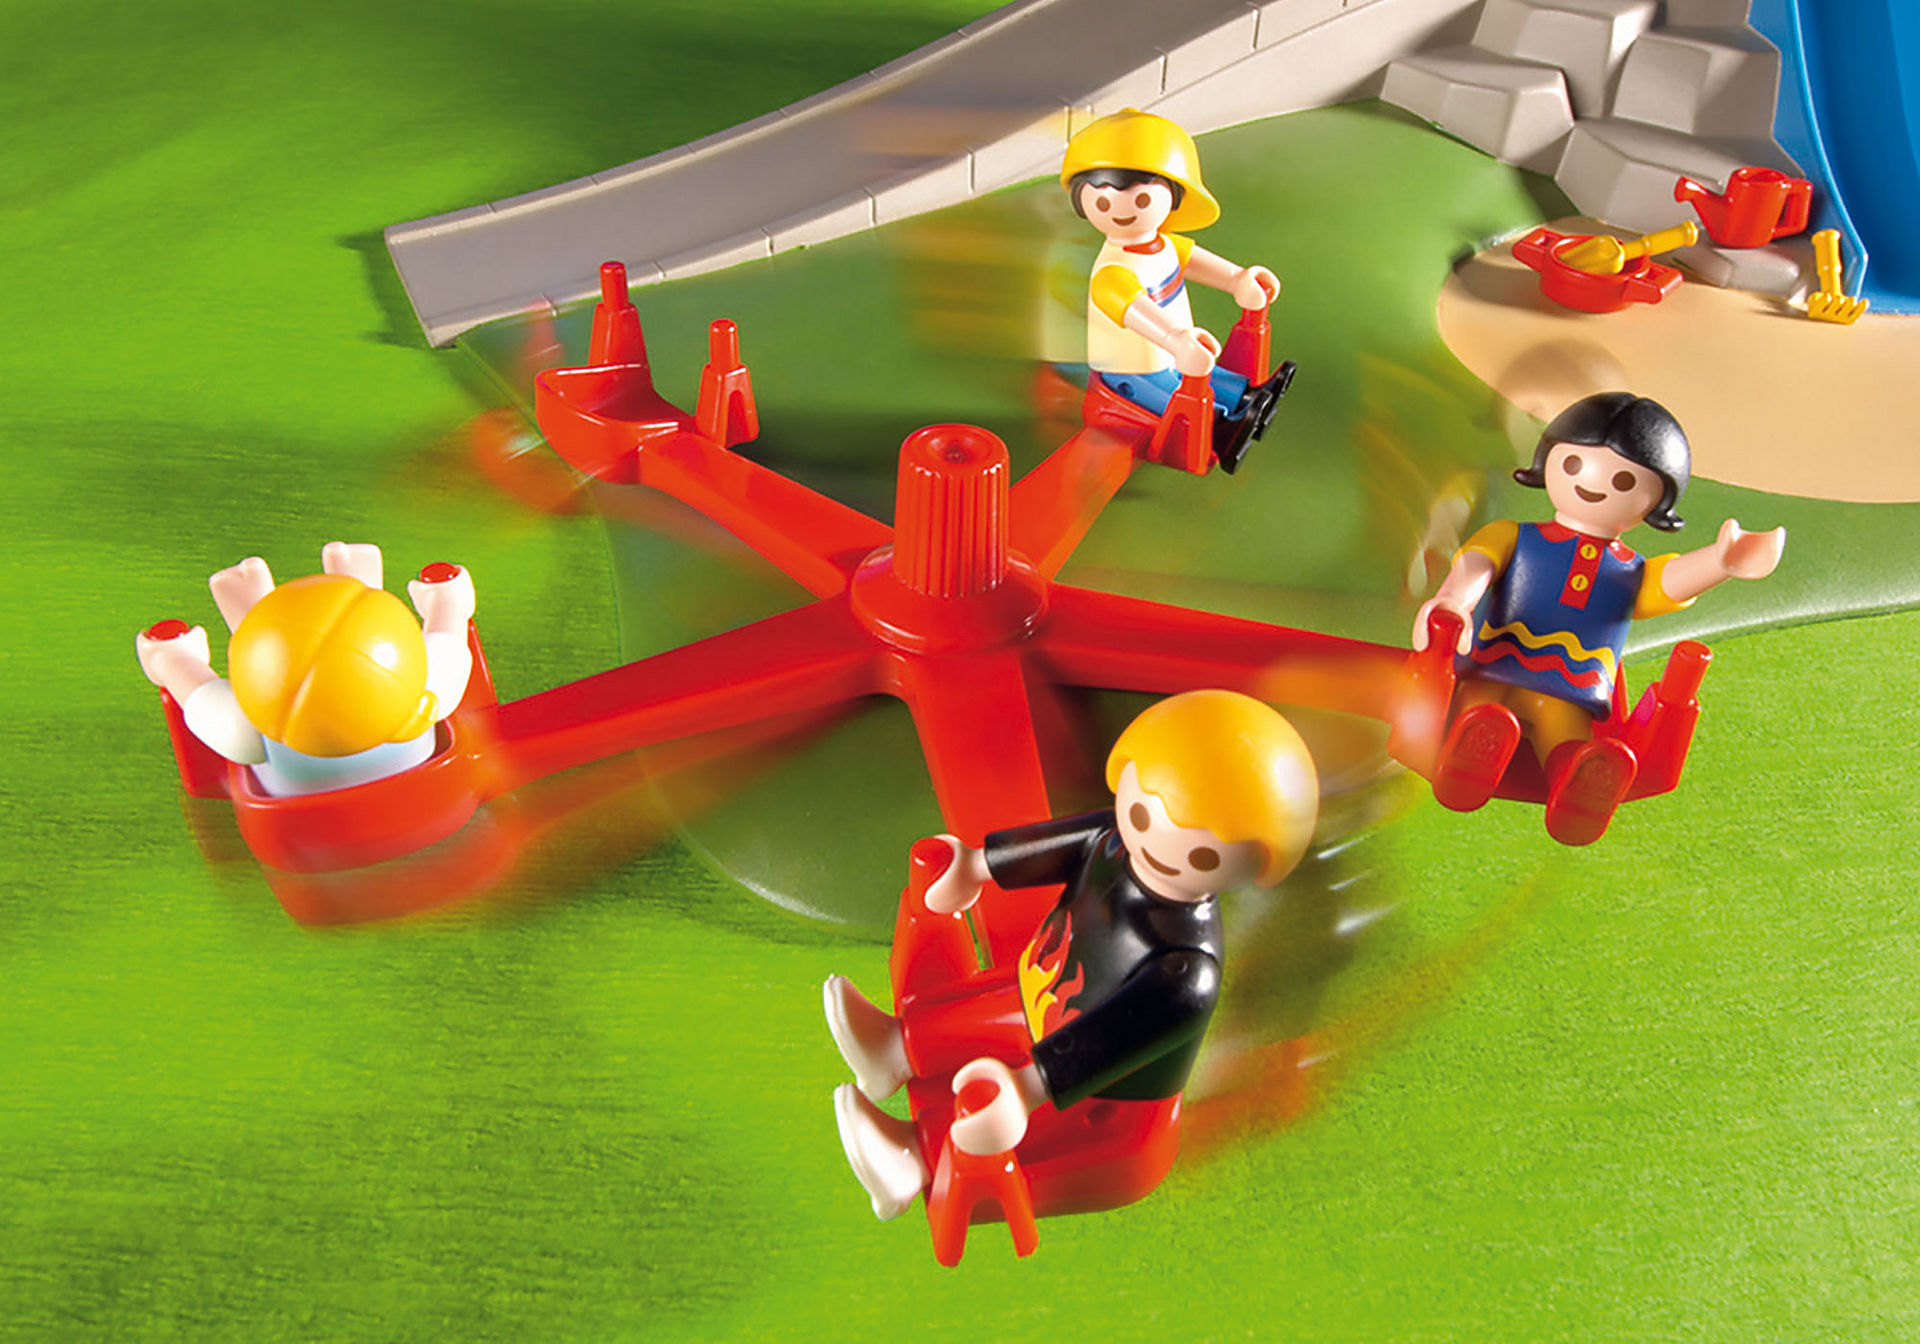 http://media.playmobil.com/i/playmobil/4132_product_extra2/SuperSet Spielplatz